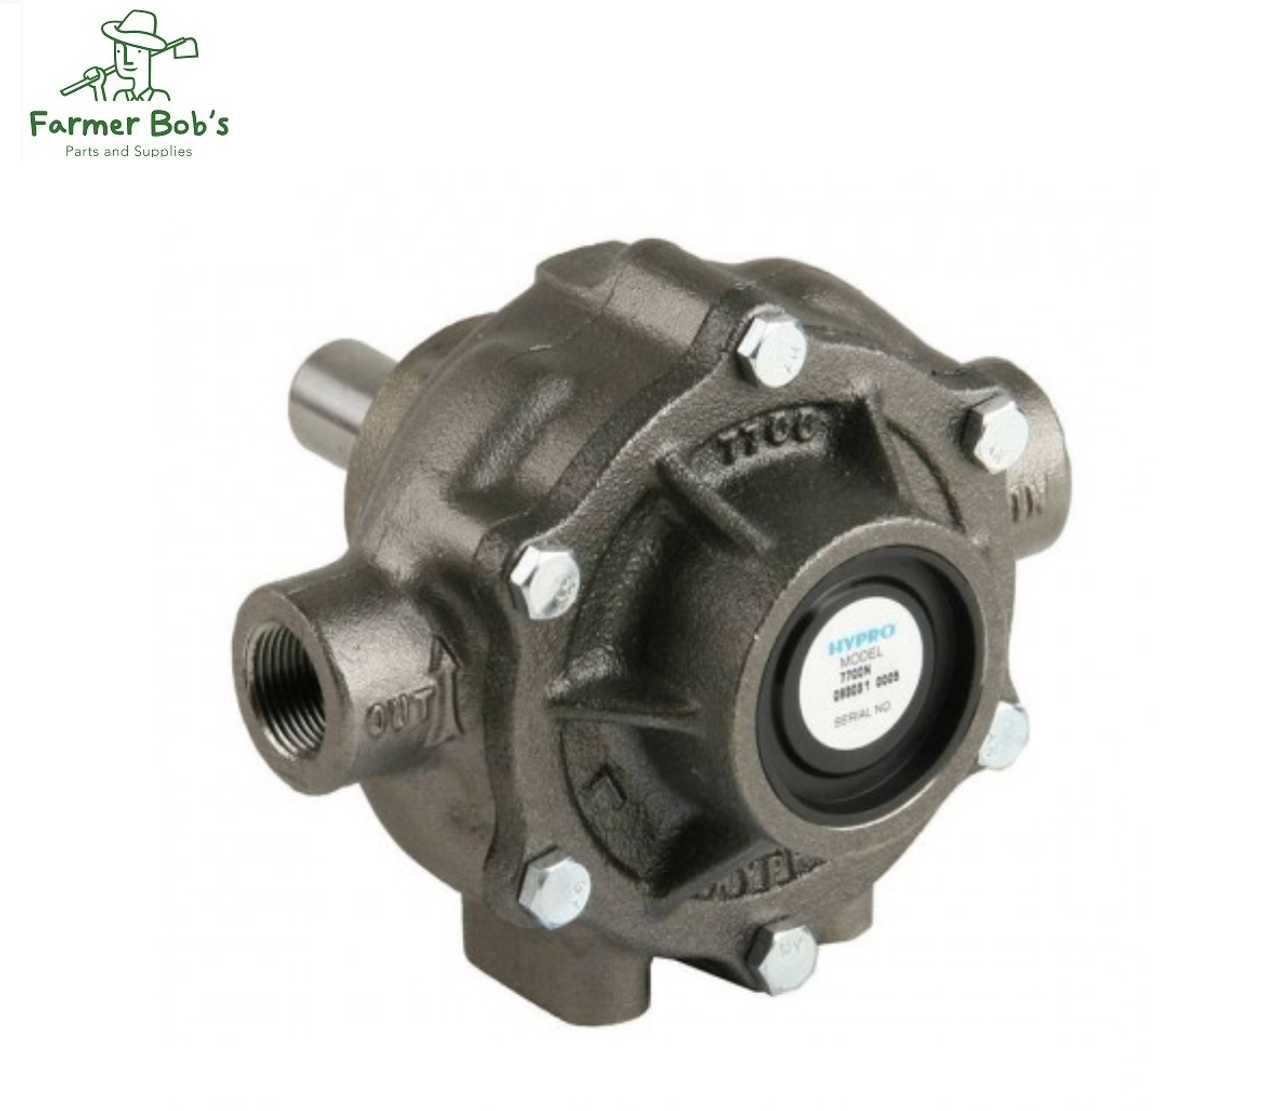 7 Roller Ni-Resist Cast Iron Pump, 15/16 Sold Shaft 14 2 - 22 gpm, Hypro